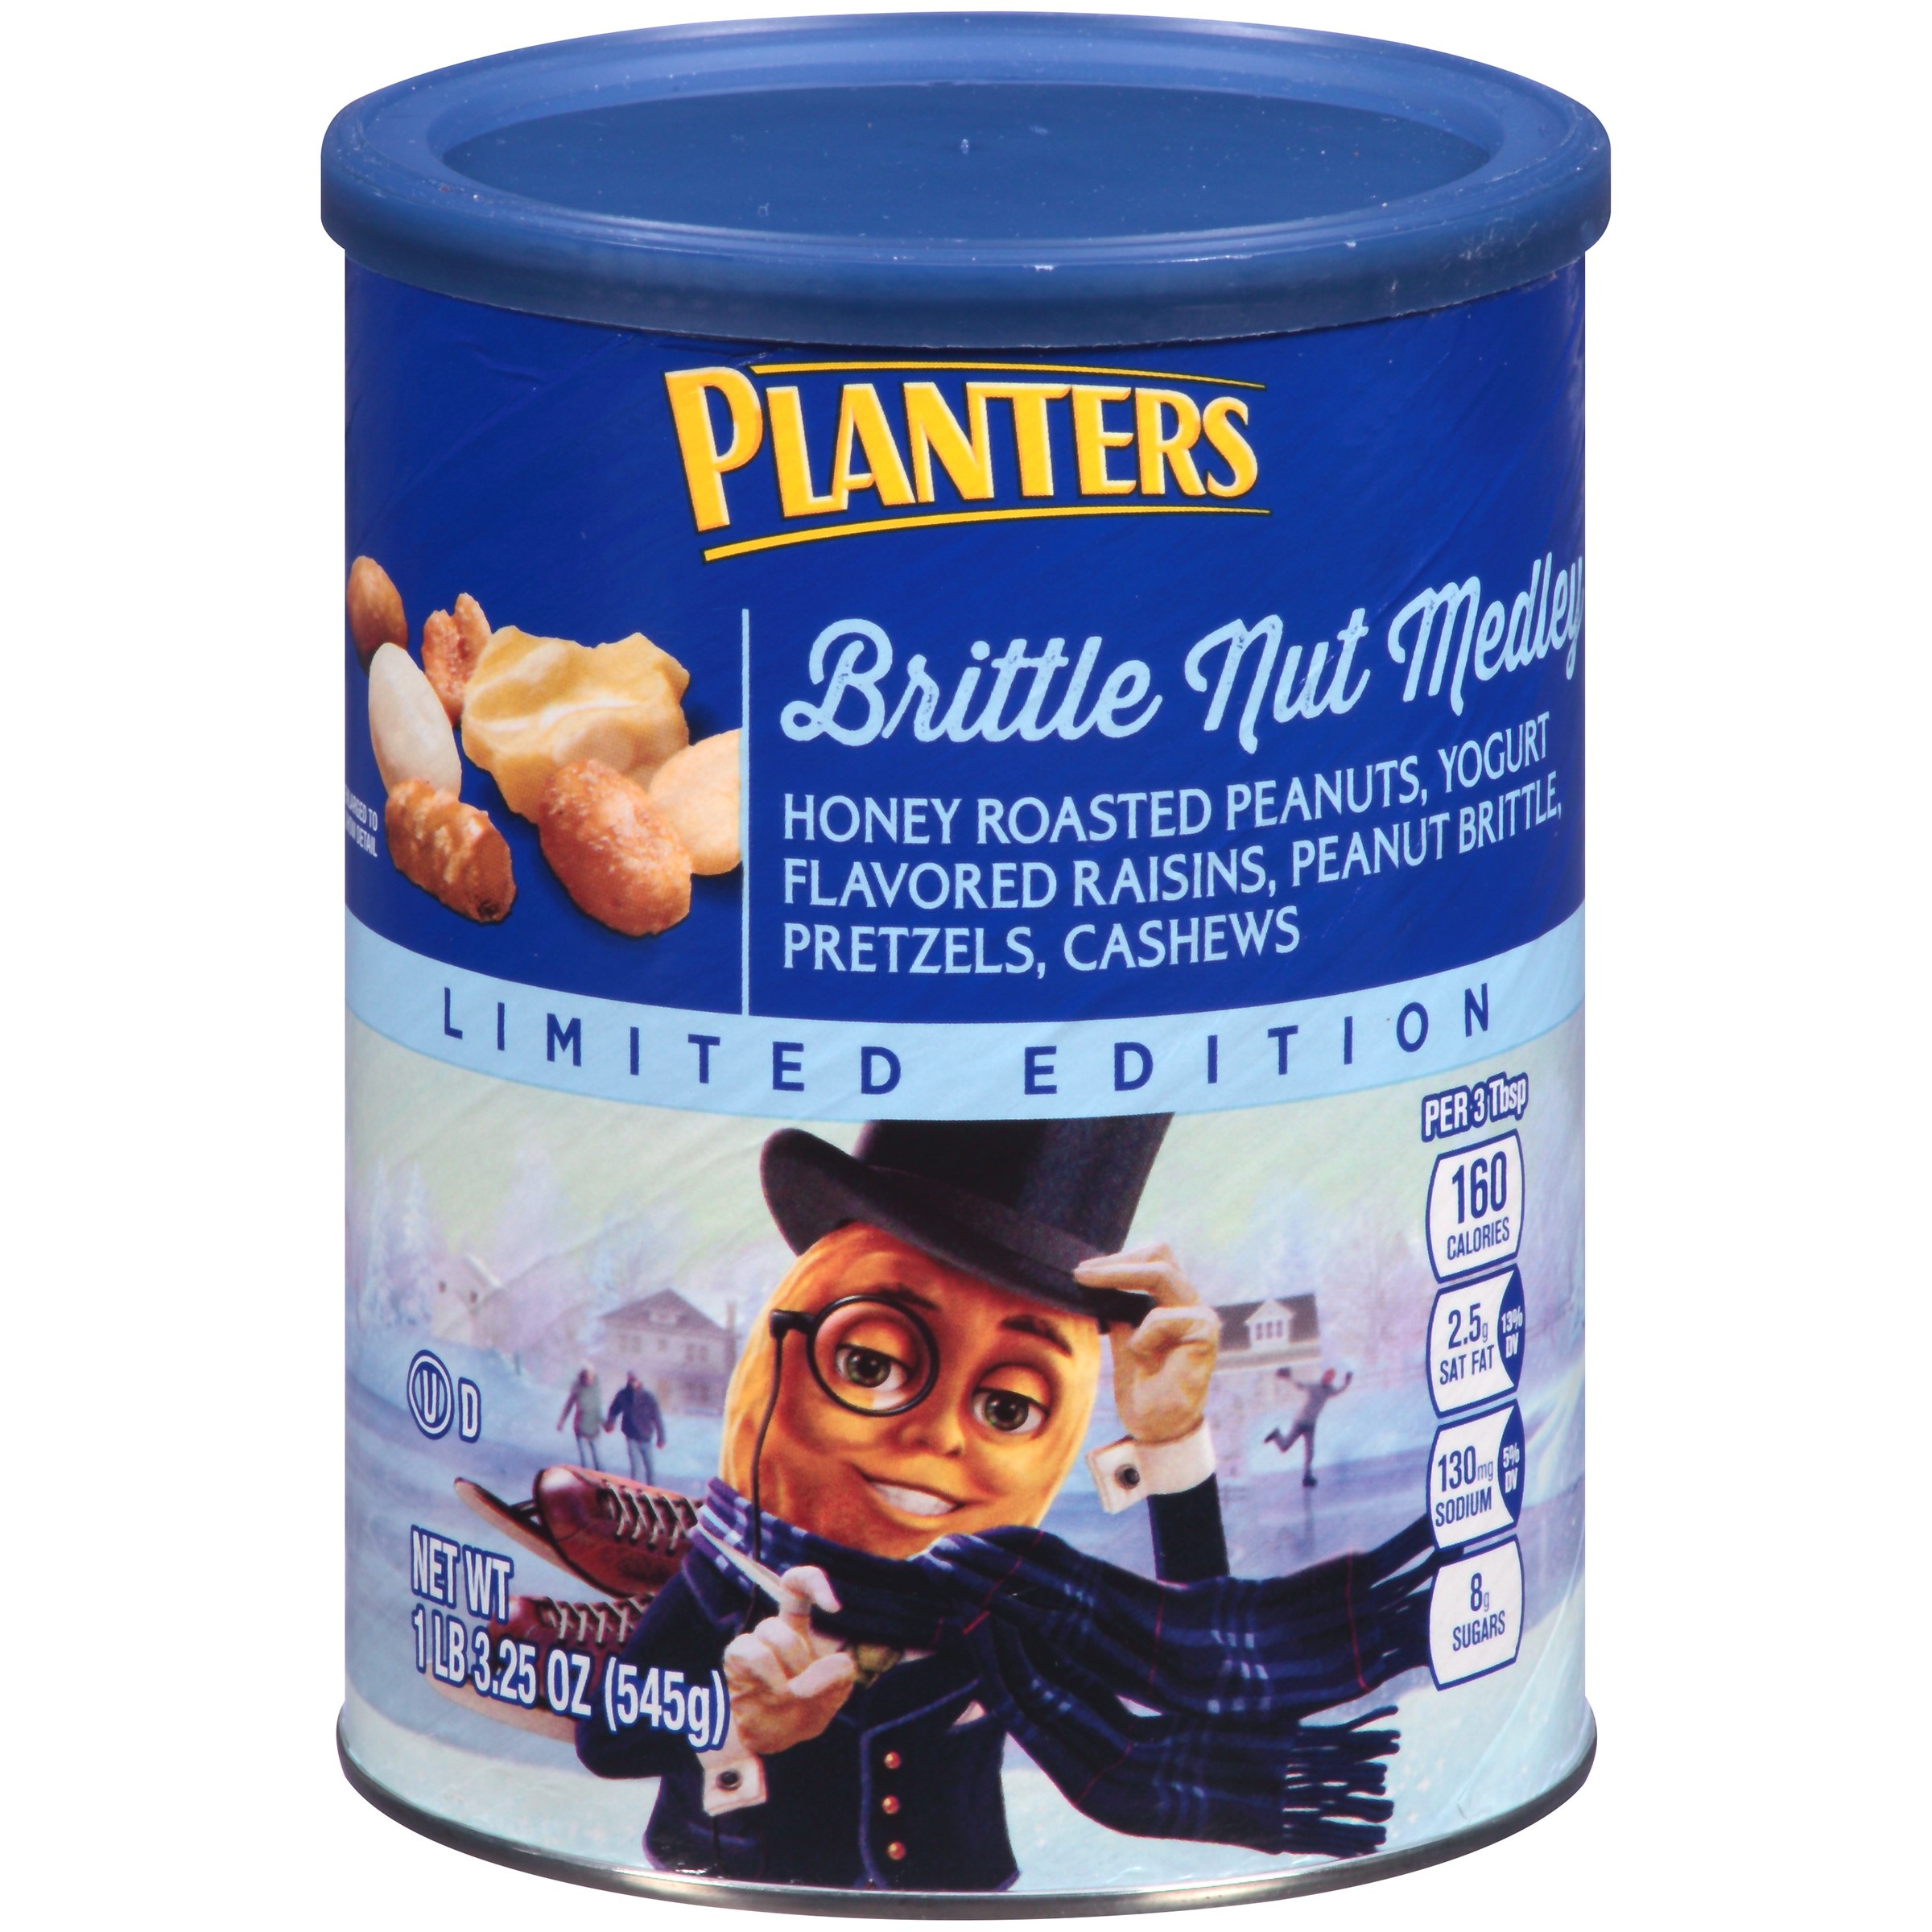 Planters Brittle Nut Medley, 19.25 Ounce